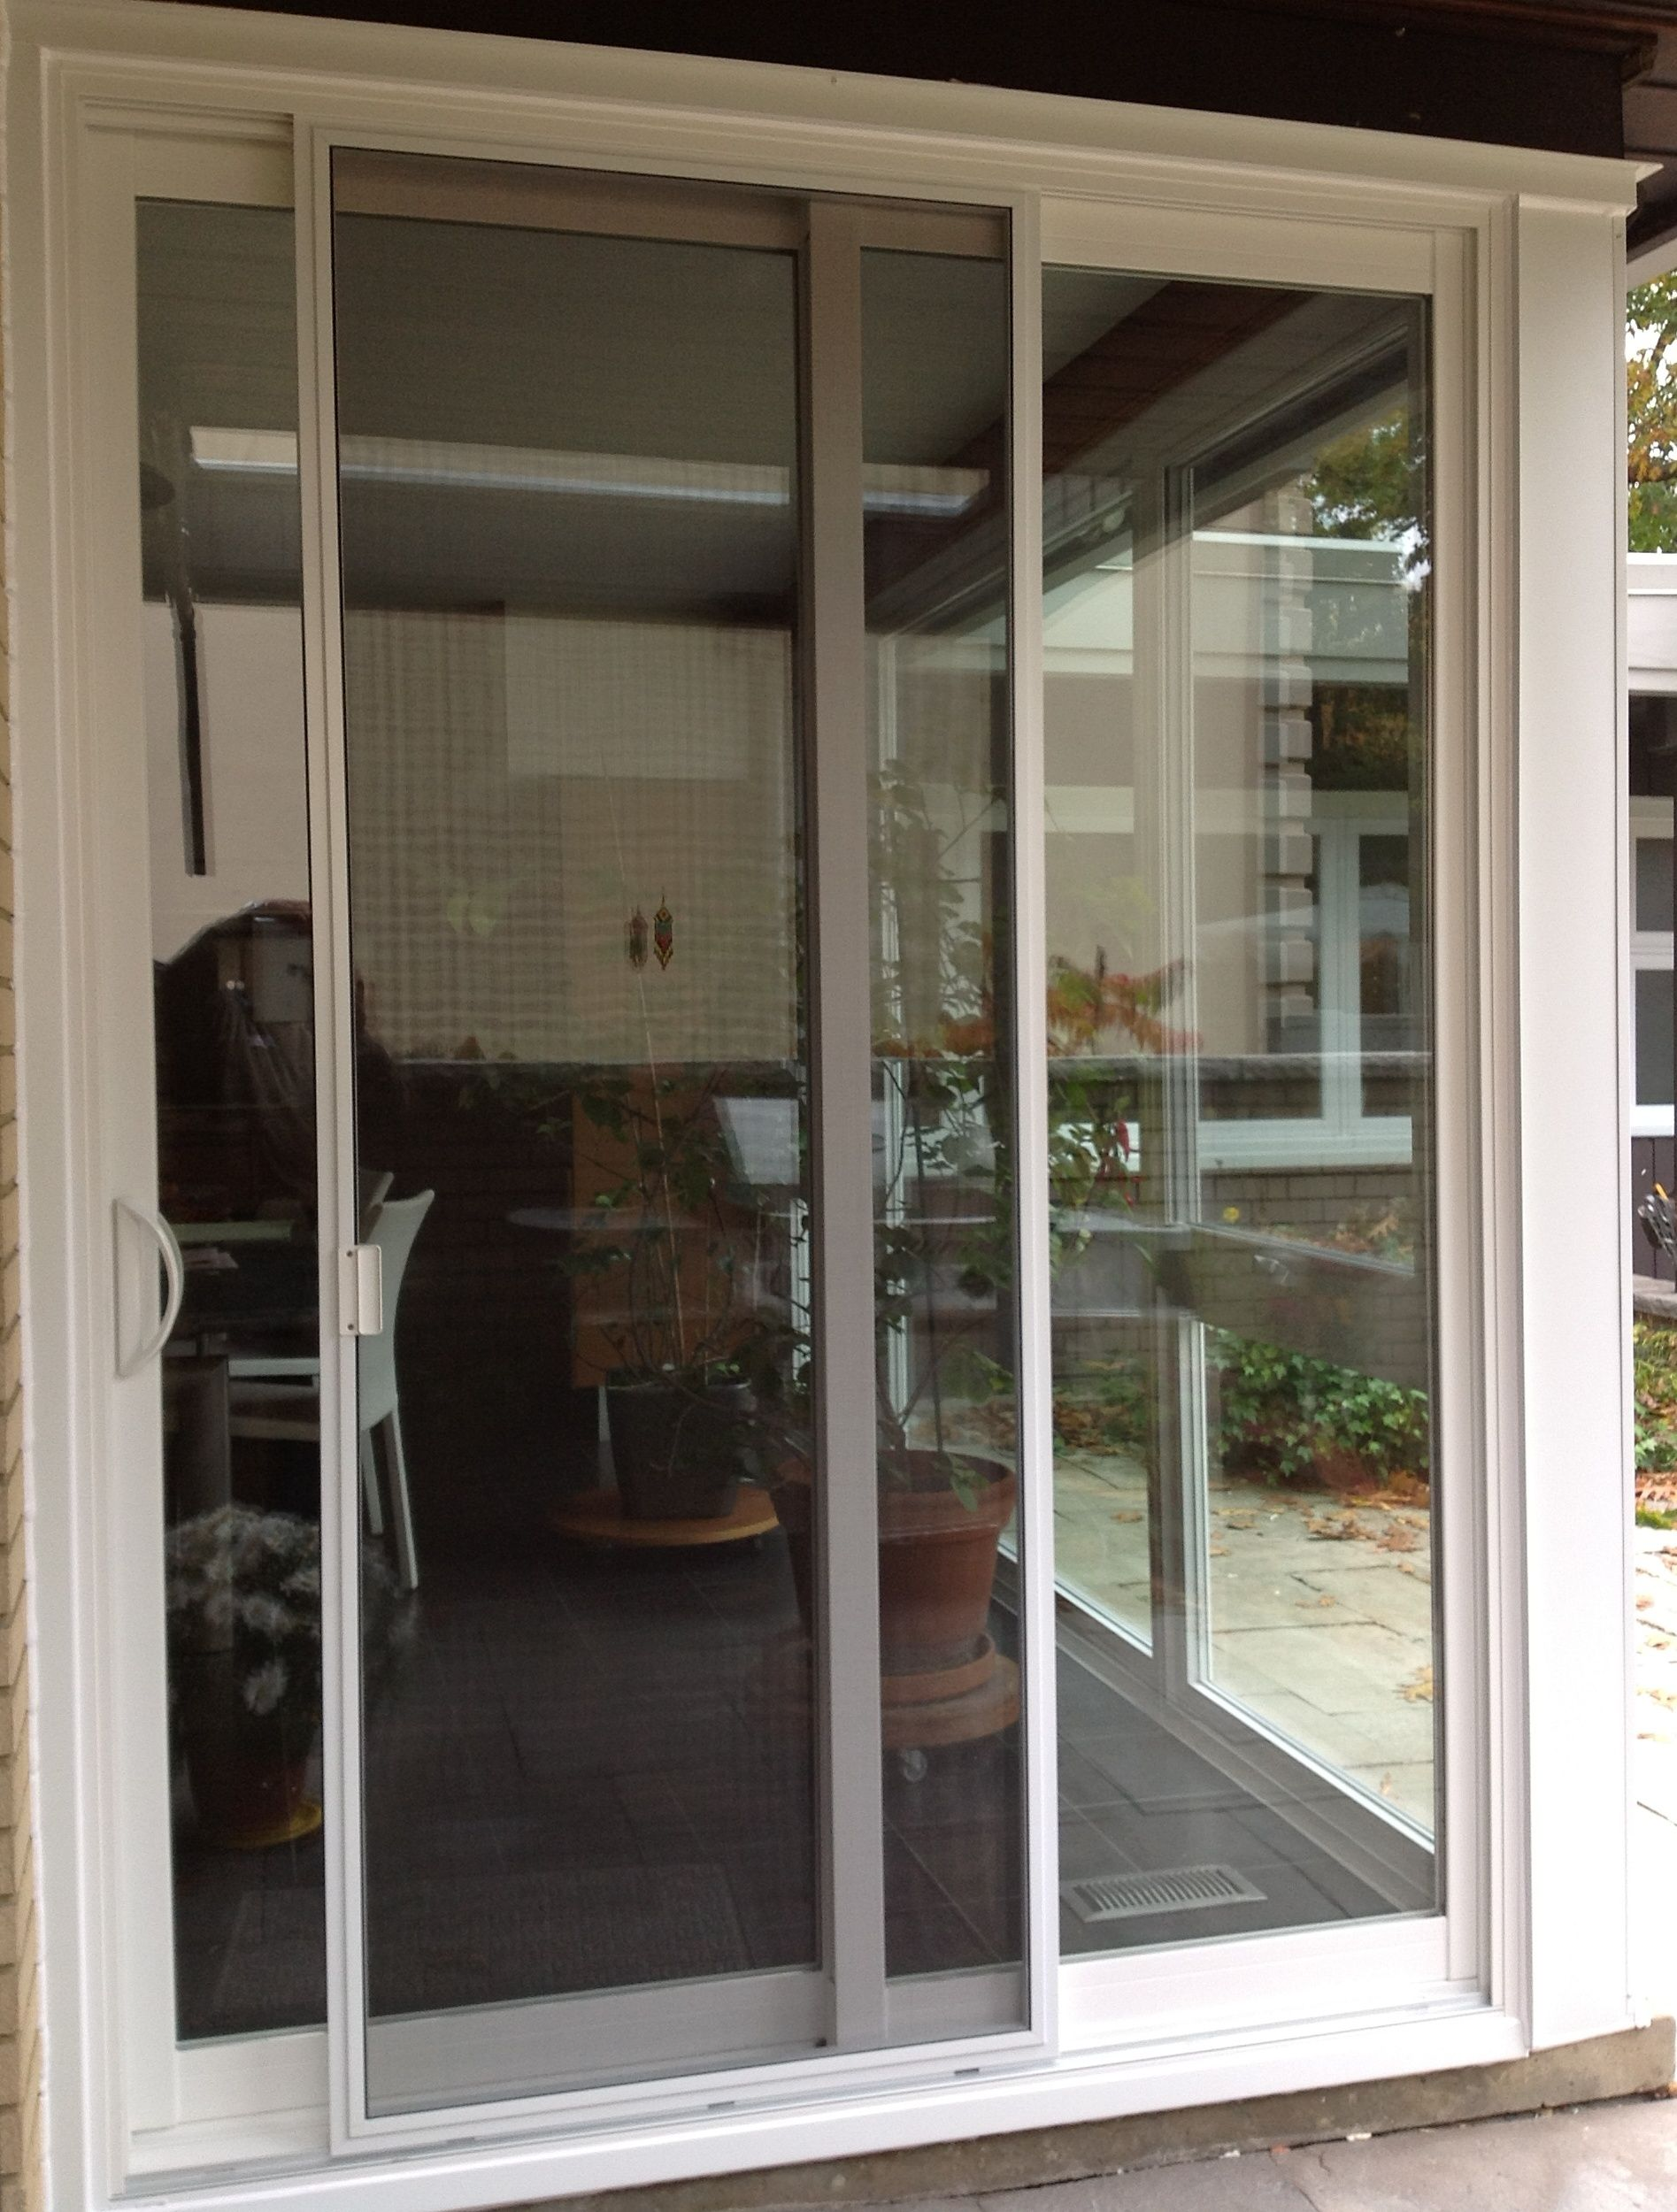 patio french patio door with screen with sliding door system and patio furniture set enthralling french patio door with screen to increase the advanced